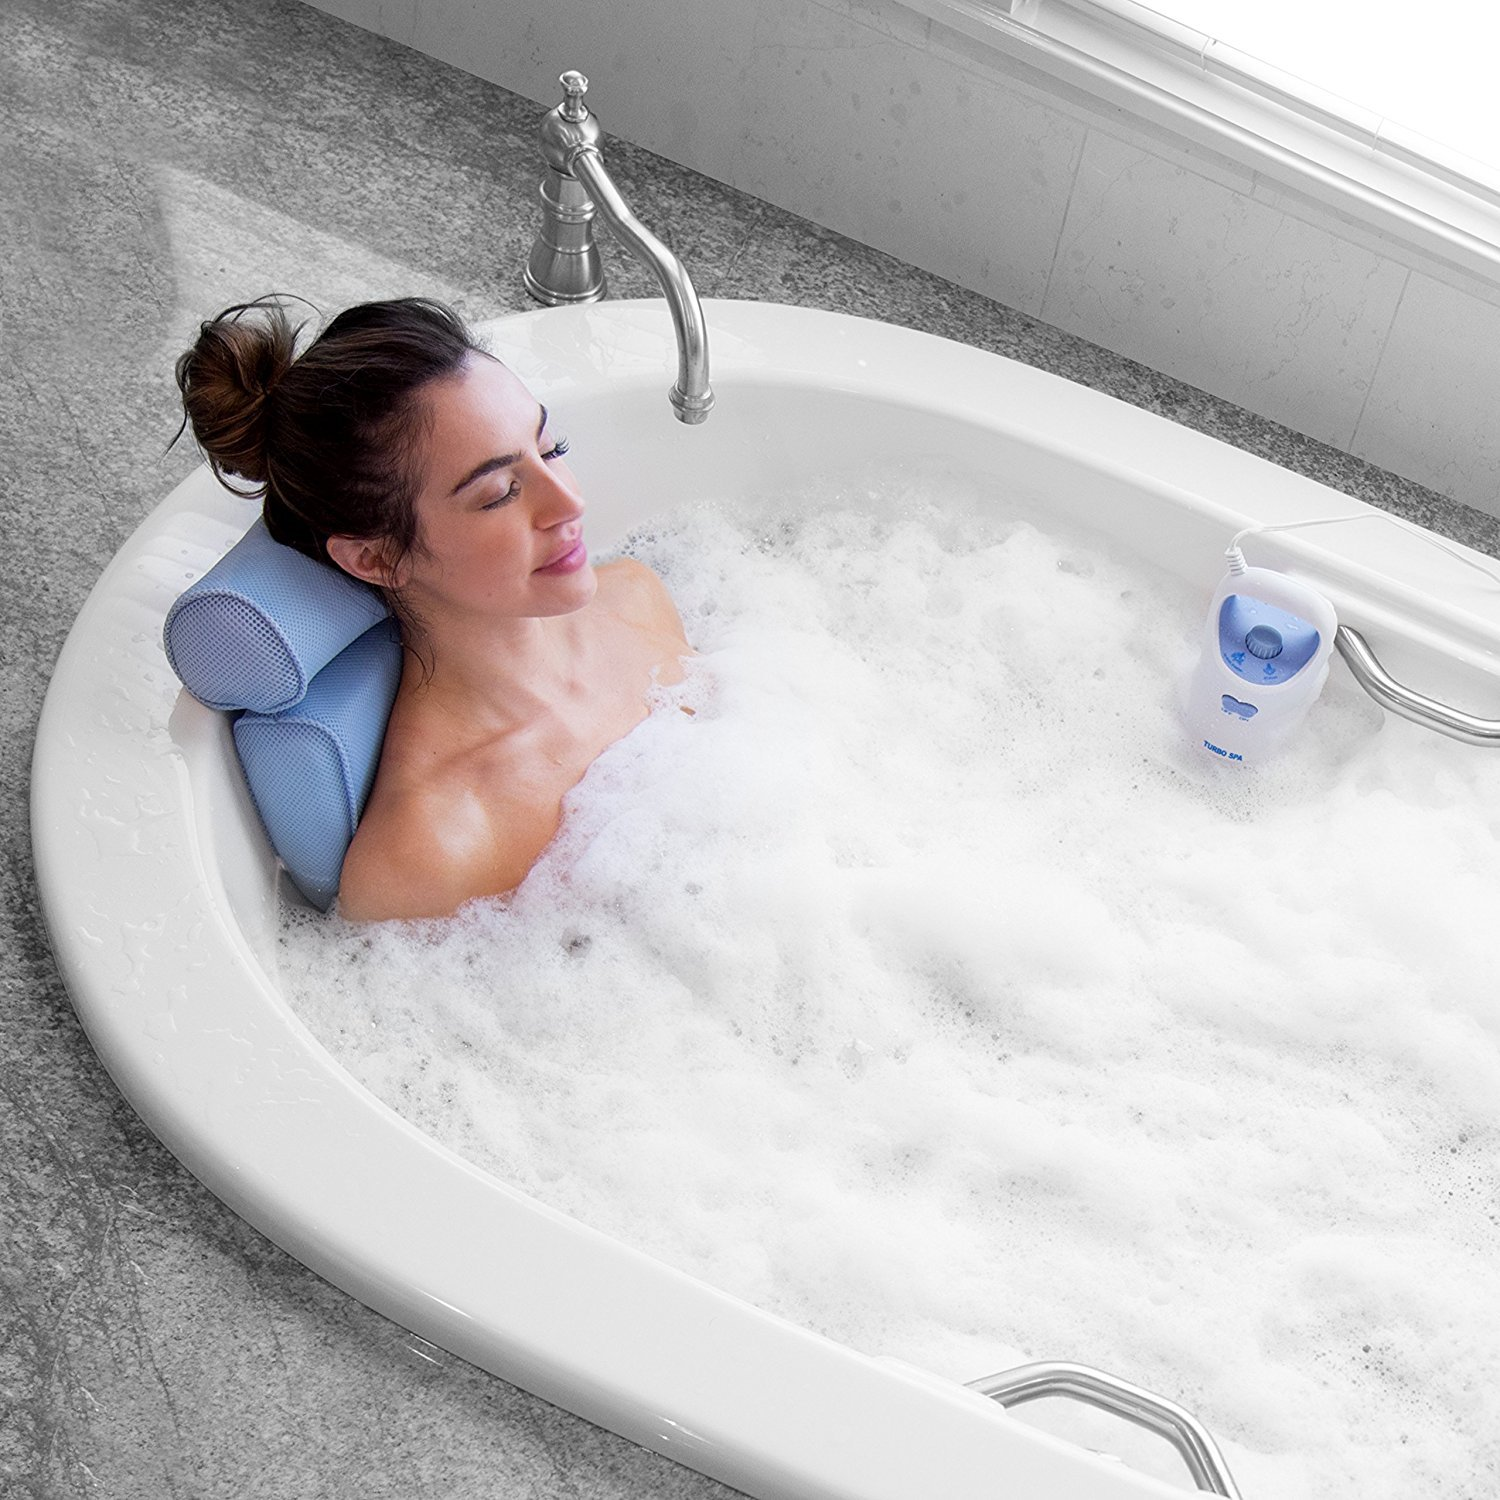 Bodyhealt Home Spa Jacuzzi Bath Set, Gentle Massage Jet with Spa Pillow